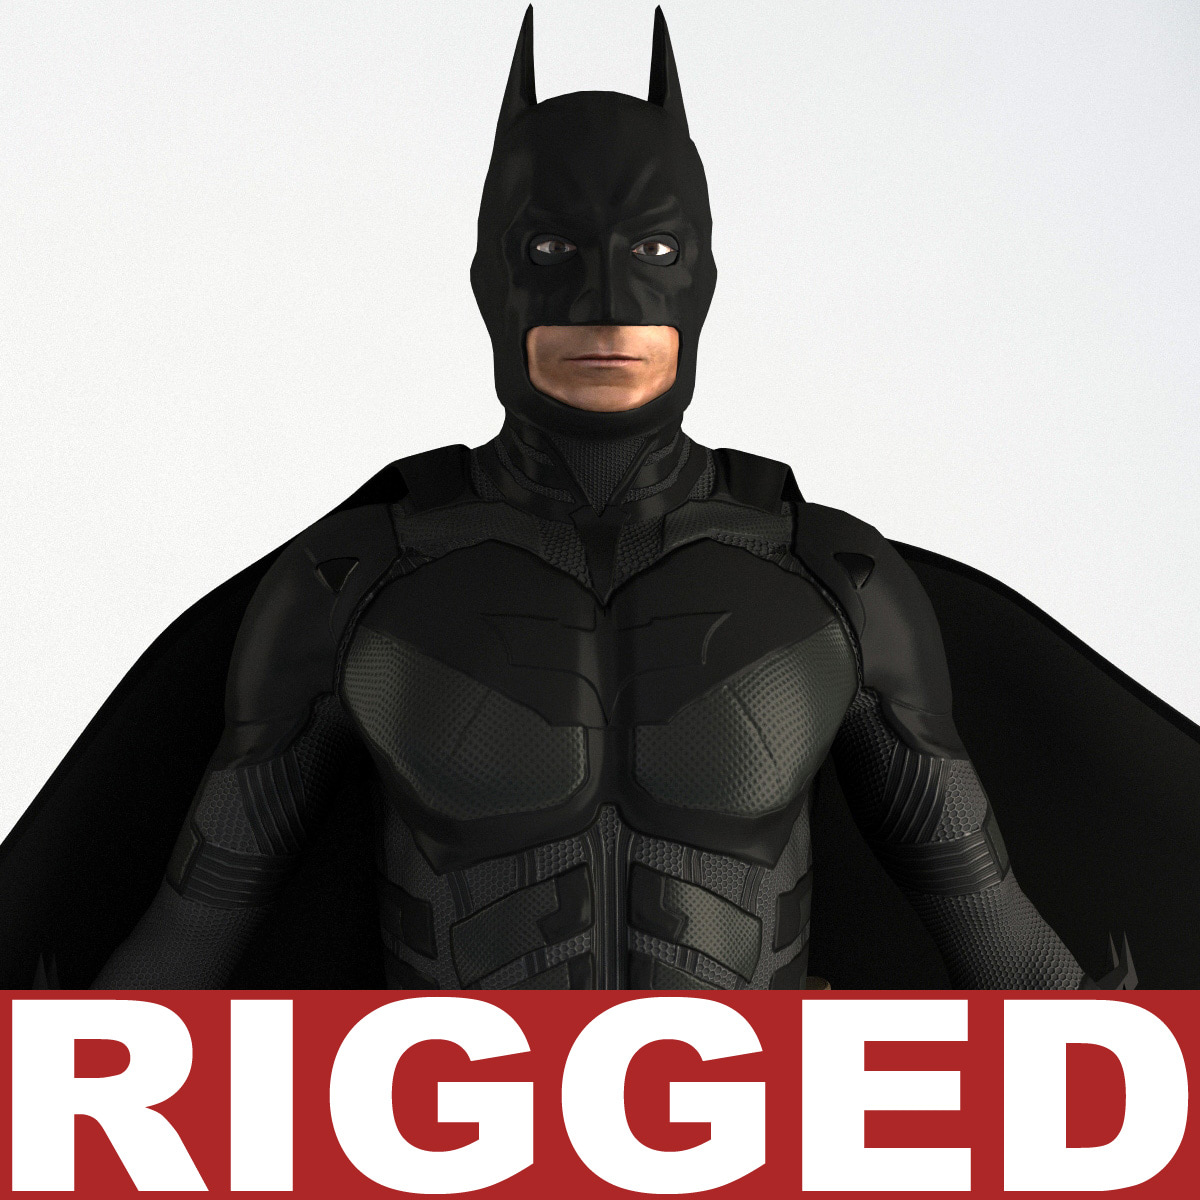 Batman_Rigged_00.jpg